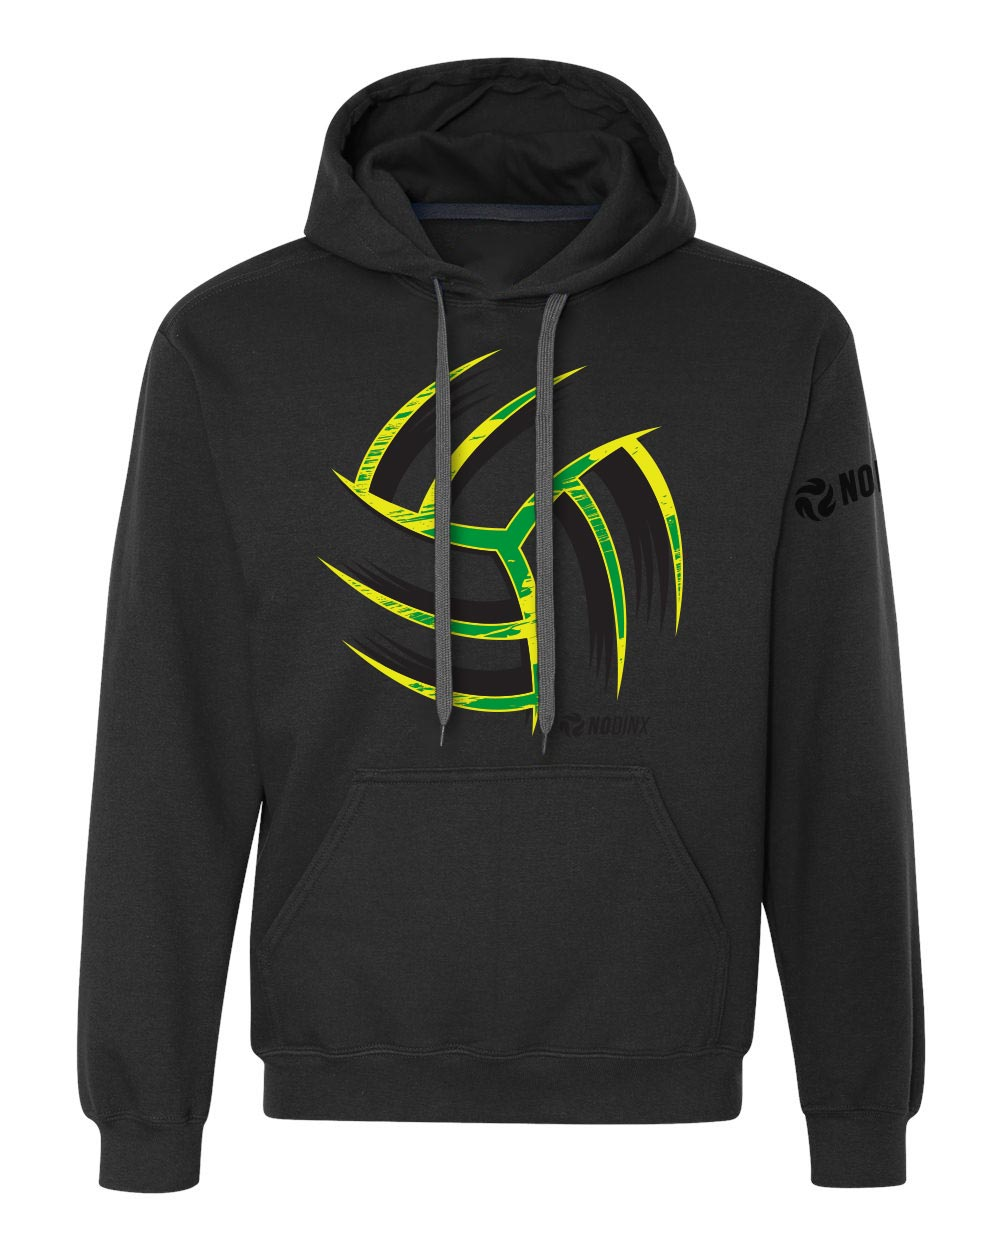 Warp Ball Hooded Sweatshirt - No Dinx Volleyball